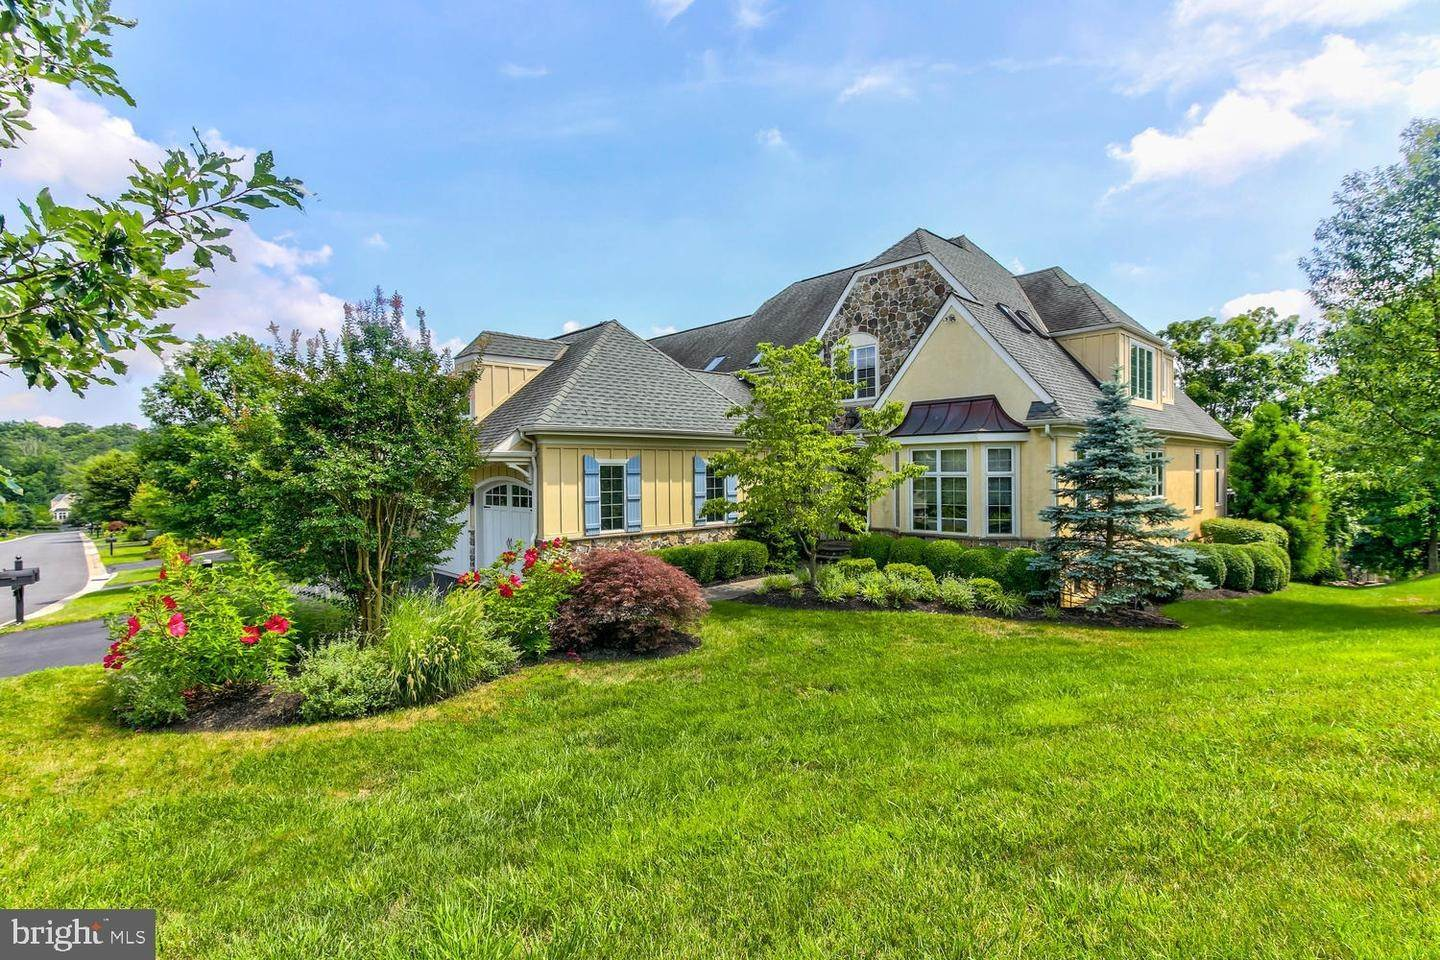 Property for Sale at 259 VALLEY RIDGE Road Haverford, Pennsylvania 19041 United States